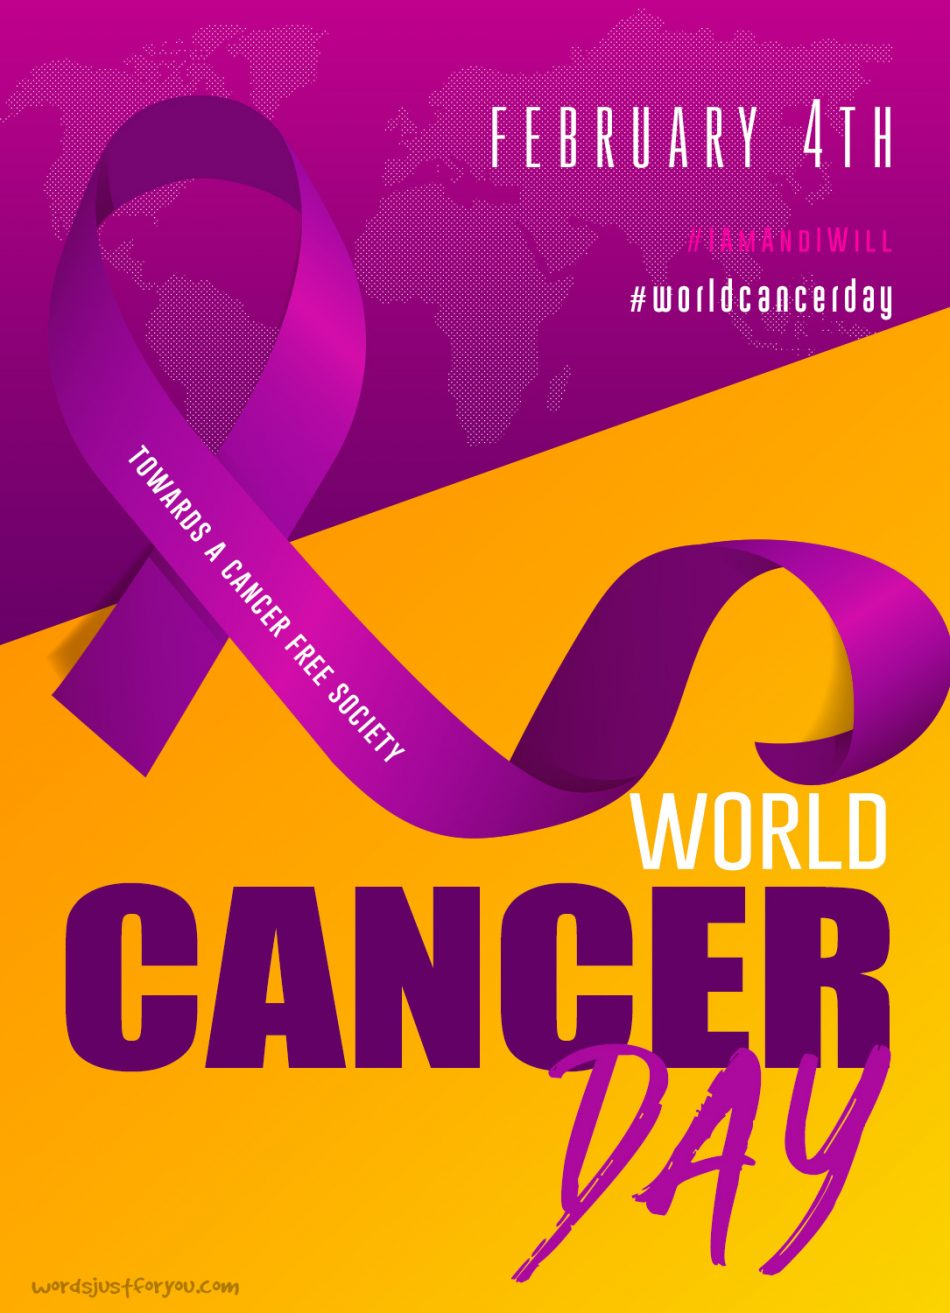 World Cancer Day - 4th February